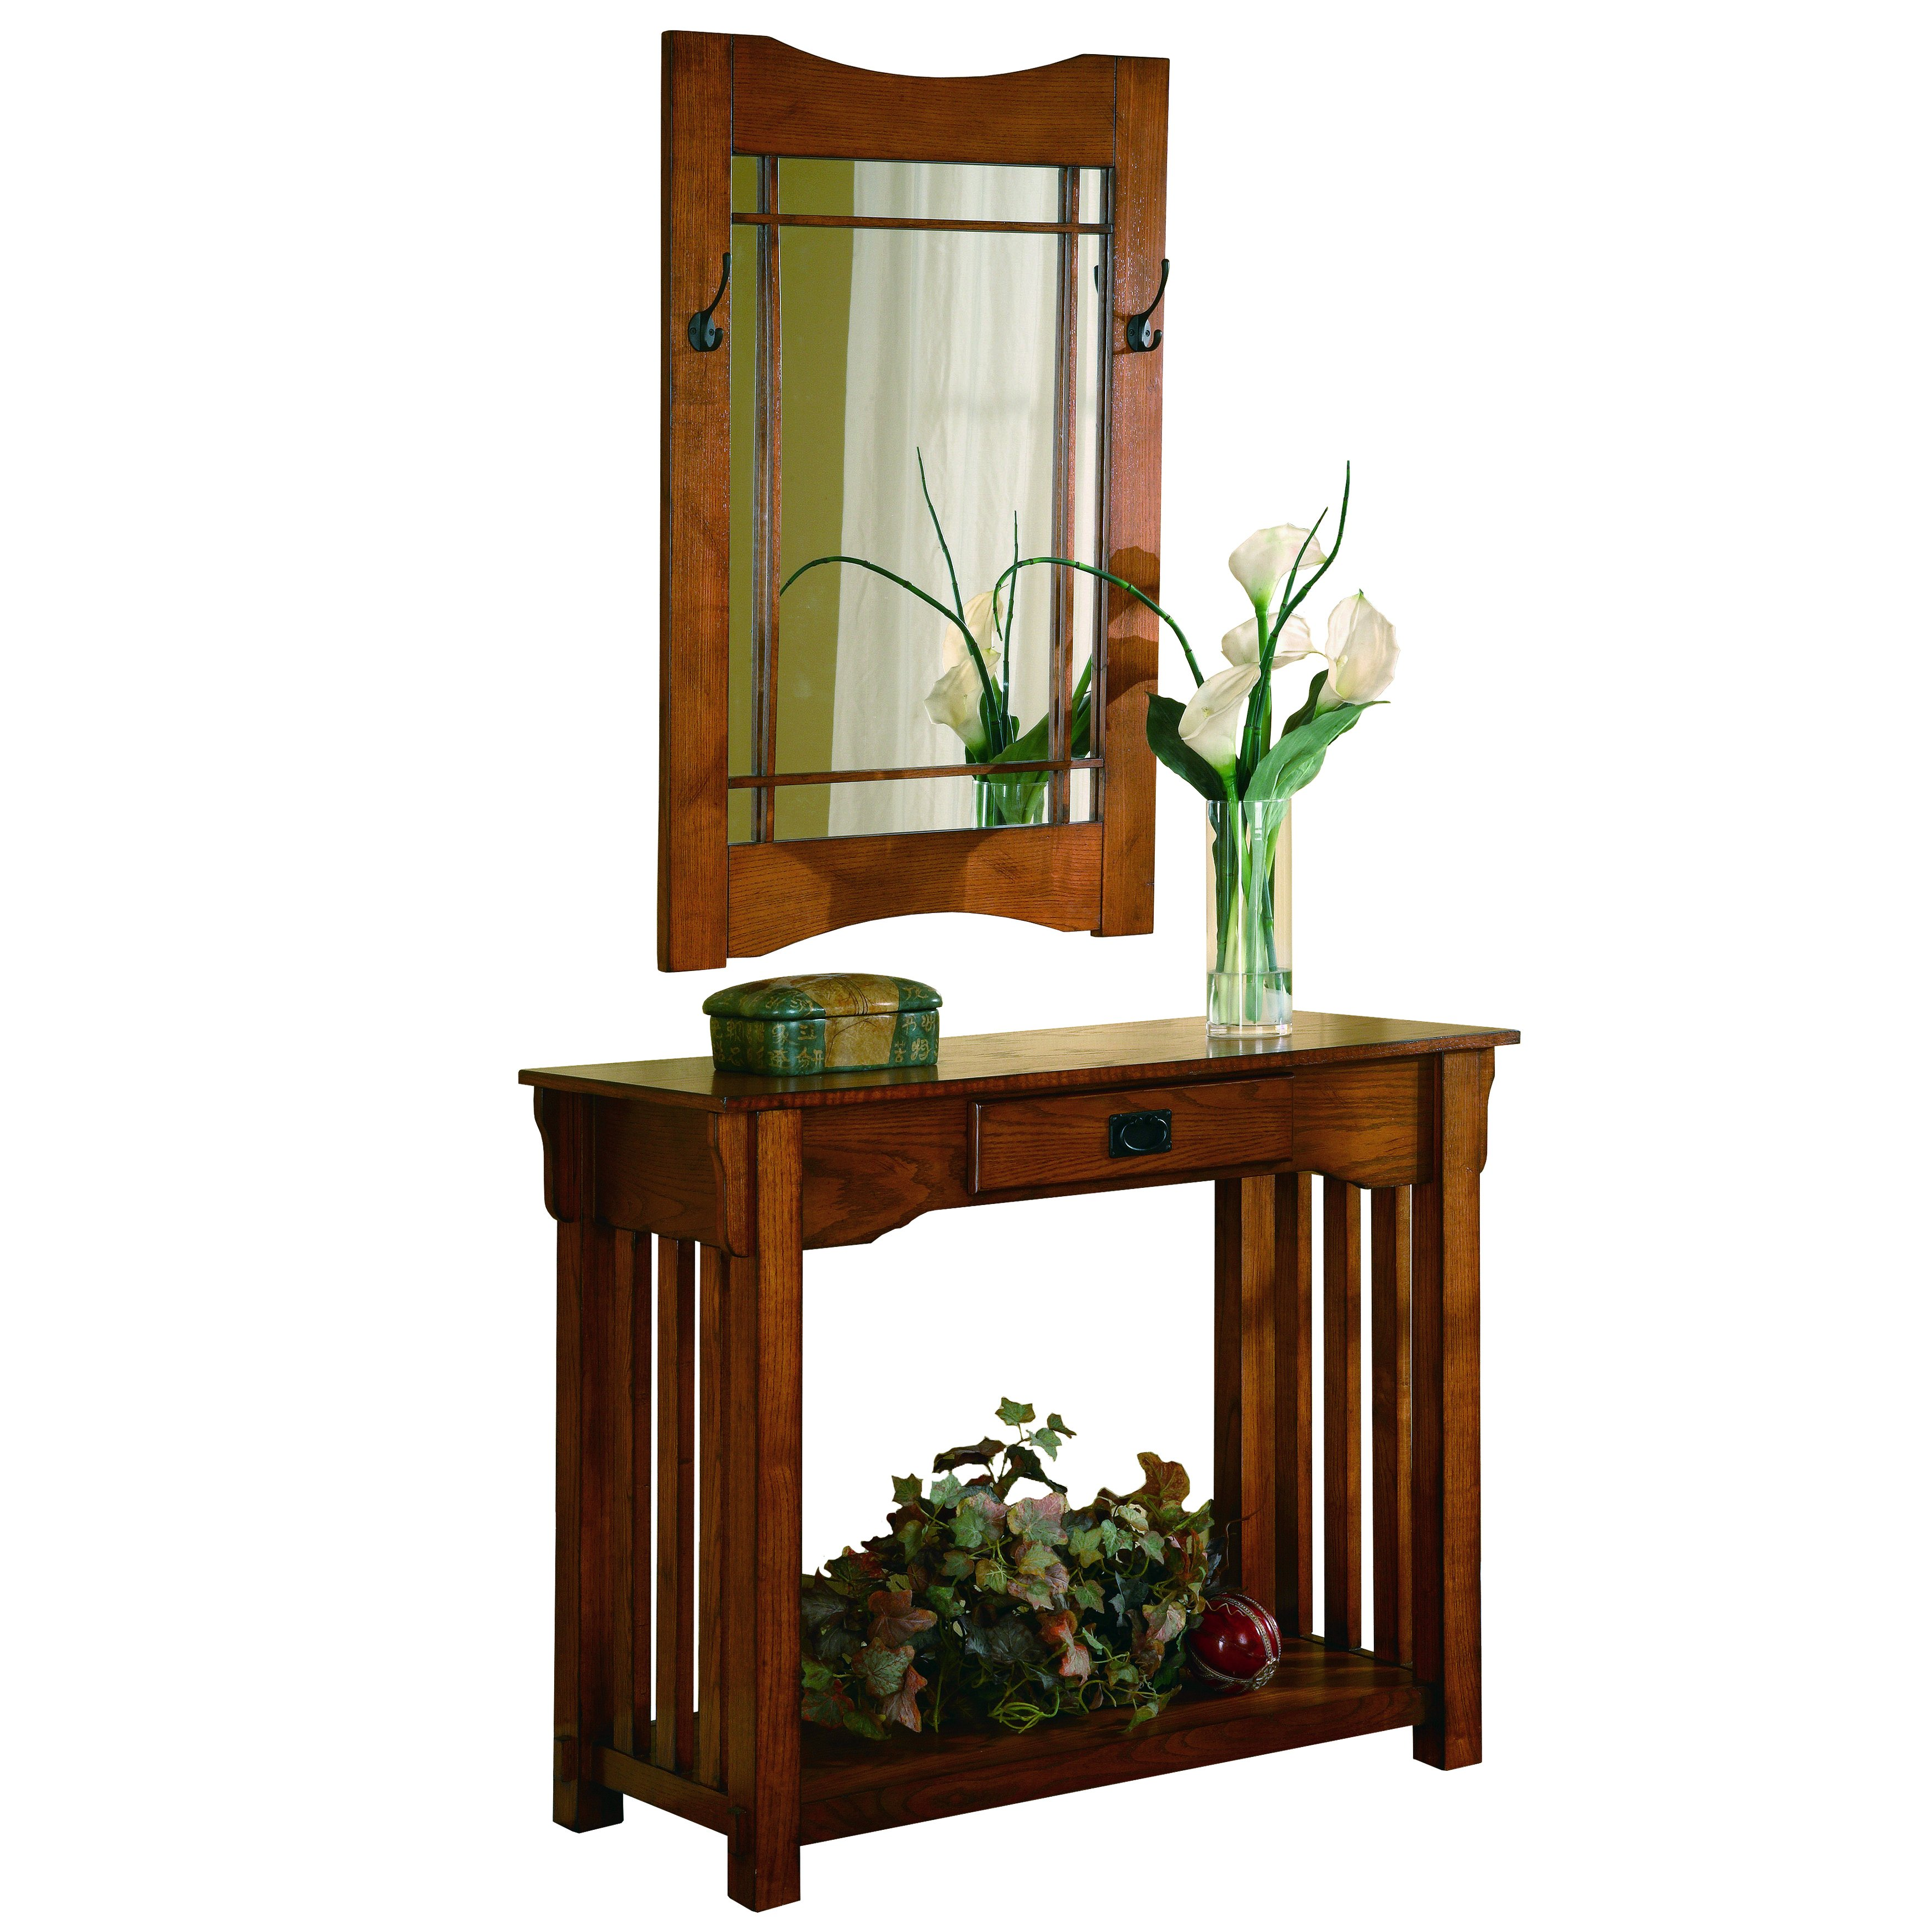 coaster company oak finish mission style accent table and framed mirror set free shipping today cloth napkins side with umbrella hole target threshold gold black marble dining